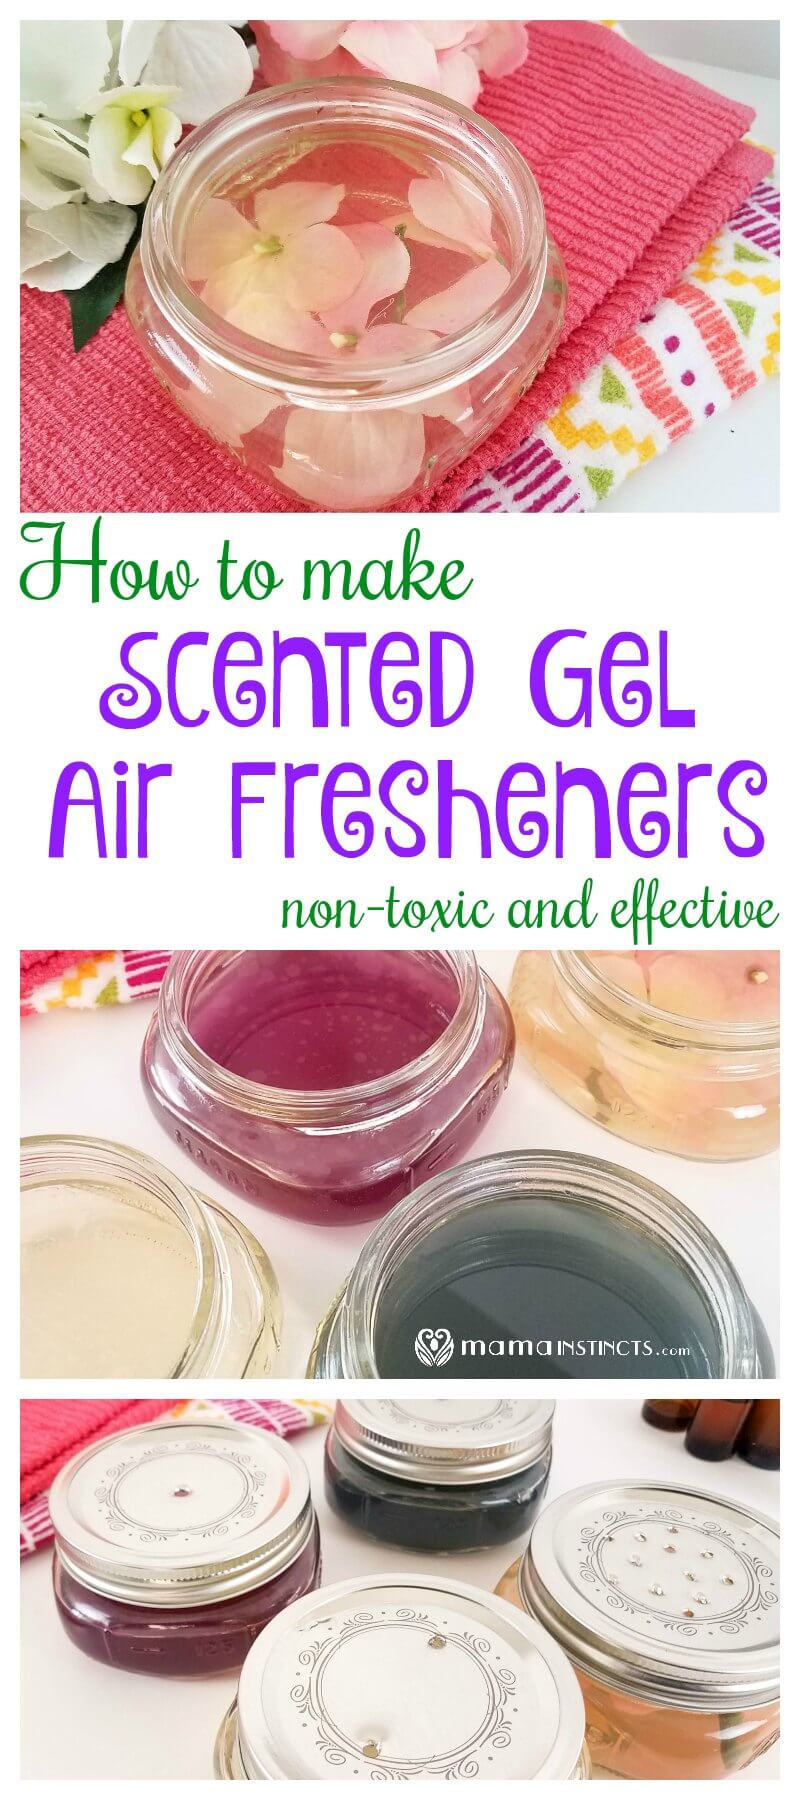 Did you know that most scented gels contain toxic chemicals? Learn how easy it is